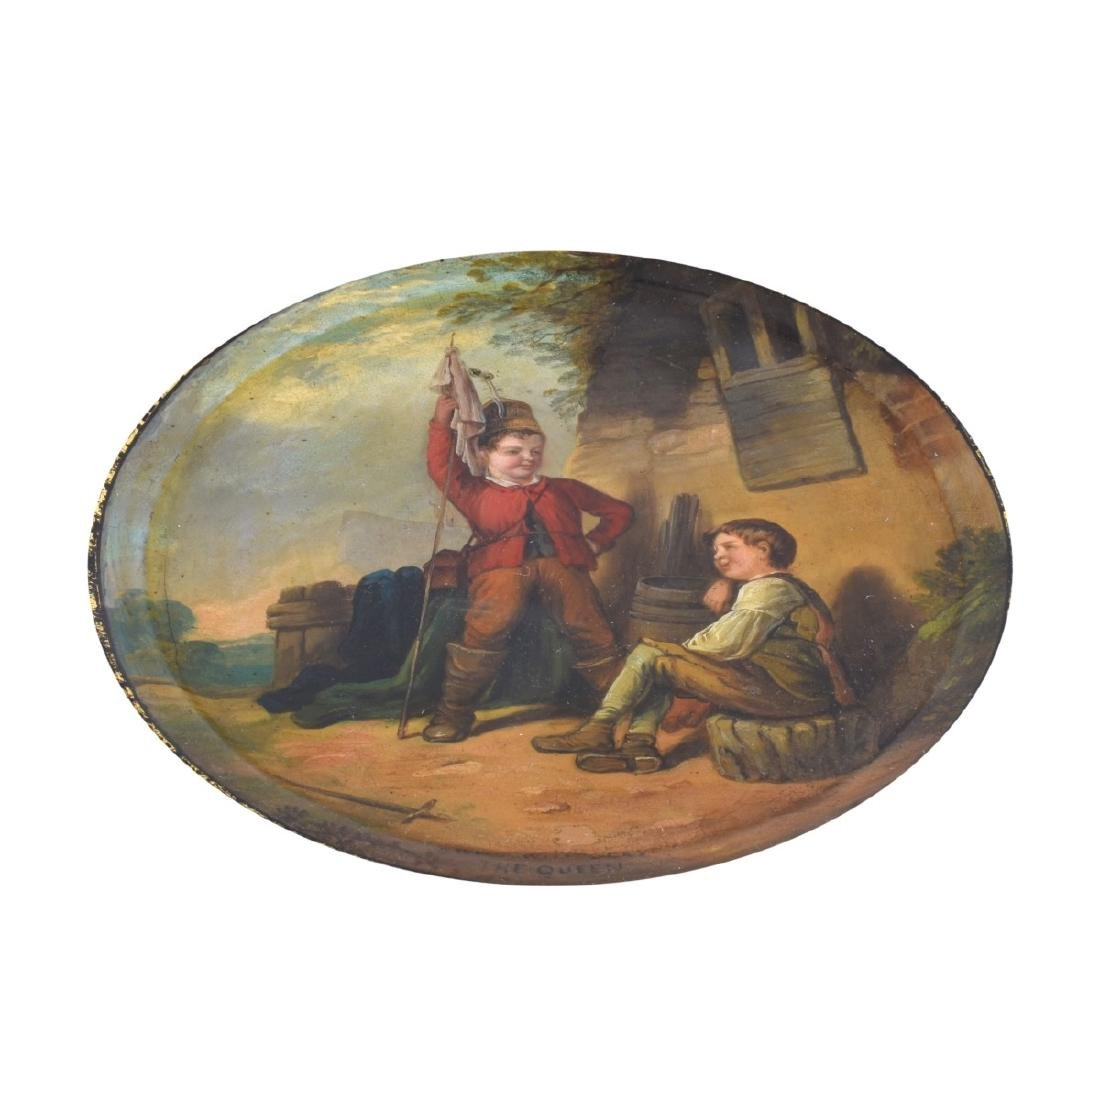 Antique English Black Lacquered Plate